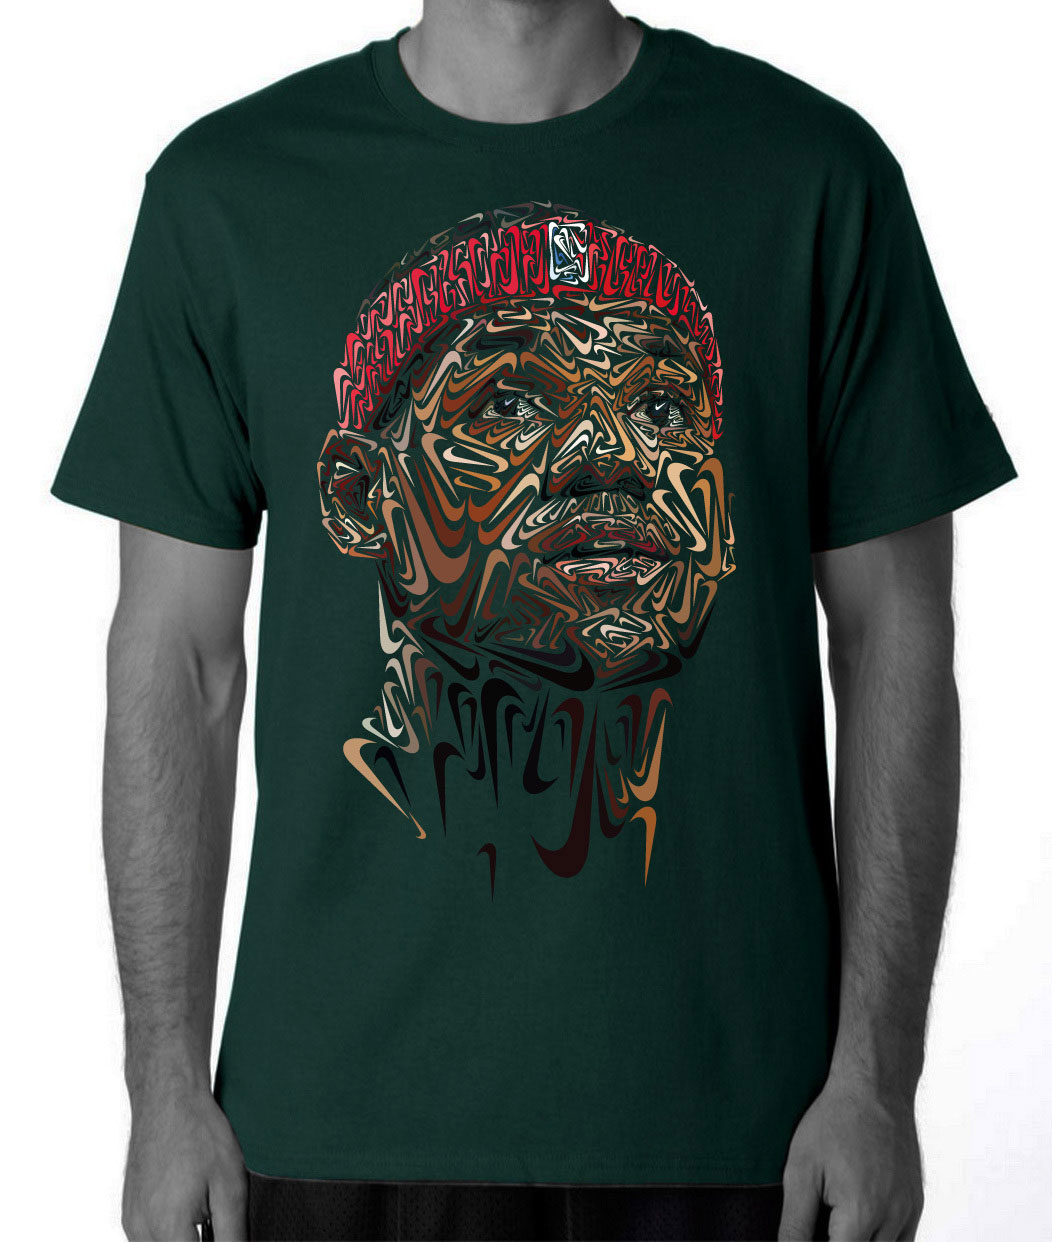 Andy Gellenberg Lebron James T-Shirt